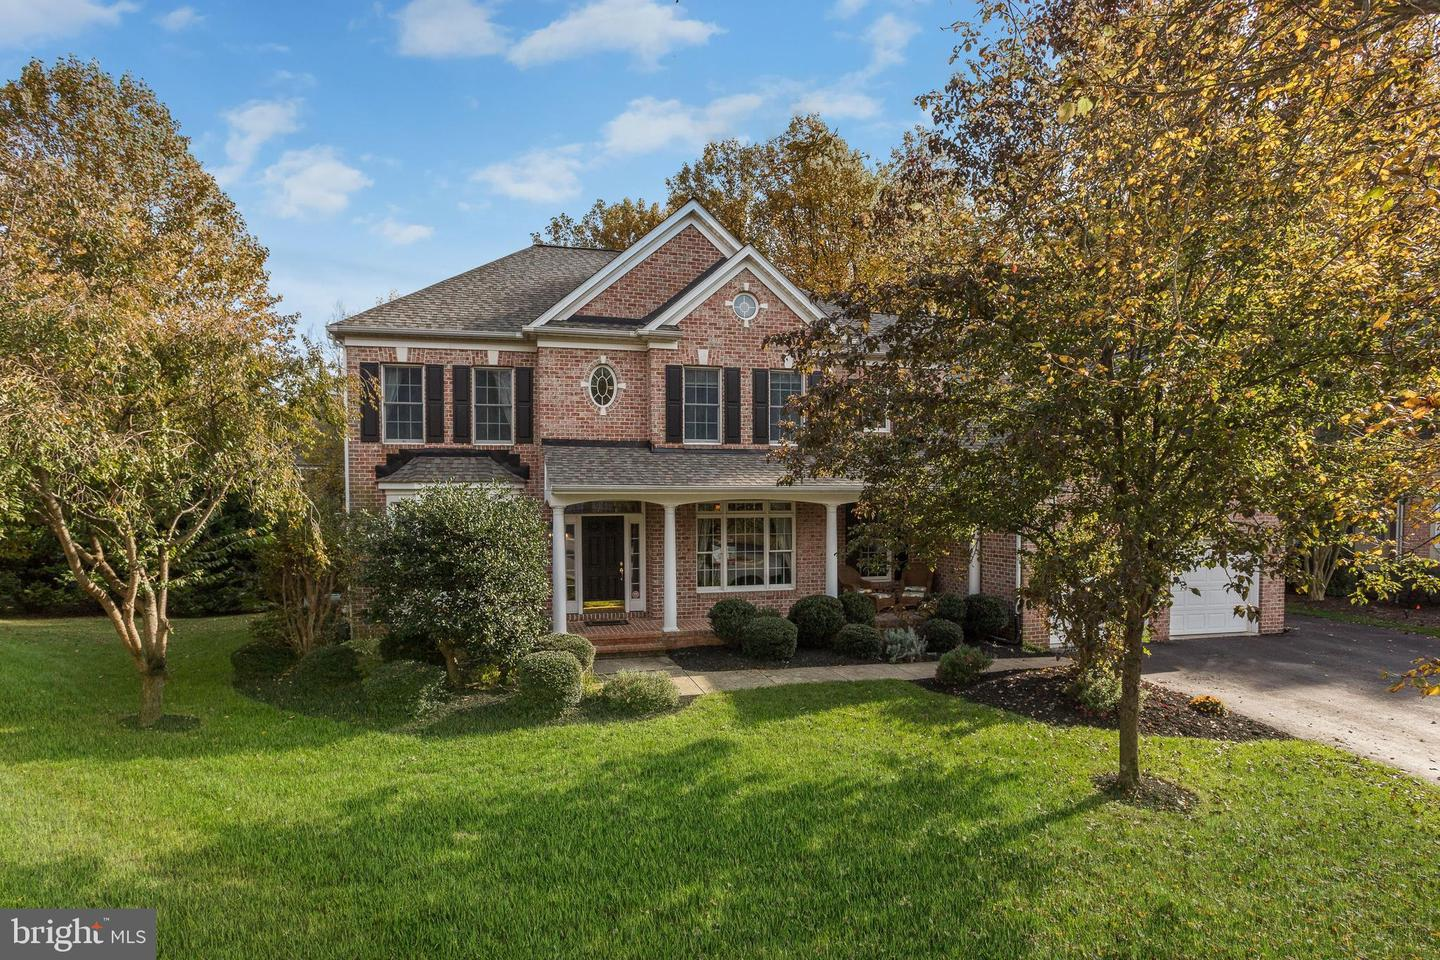 2679 GOLF ISLAND RD, ELLICOTT CITY, Maryland 21042, 6 Bedrooms Bedrooms, ,5 BathroomsBathrooms,Single Family,For Sale,2679 GOLF ISLAND RD,MDHW288136